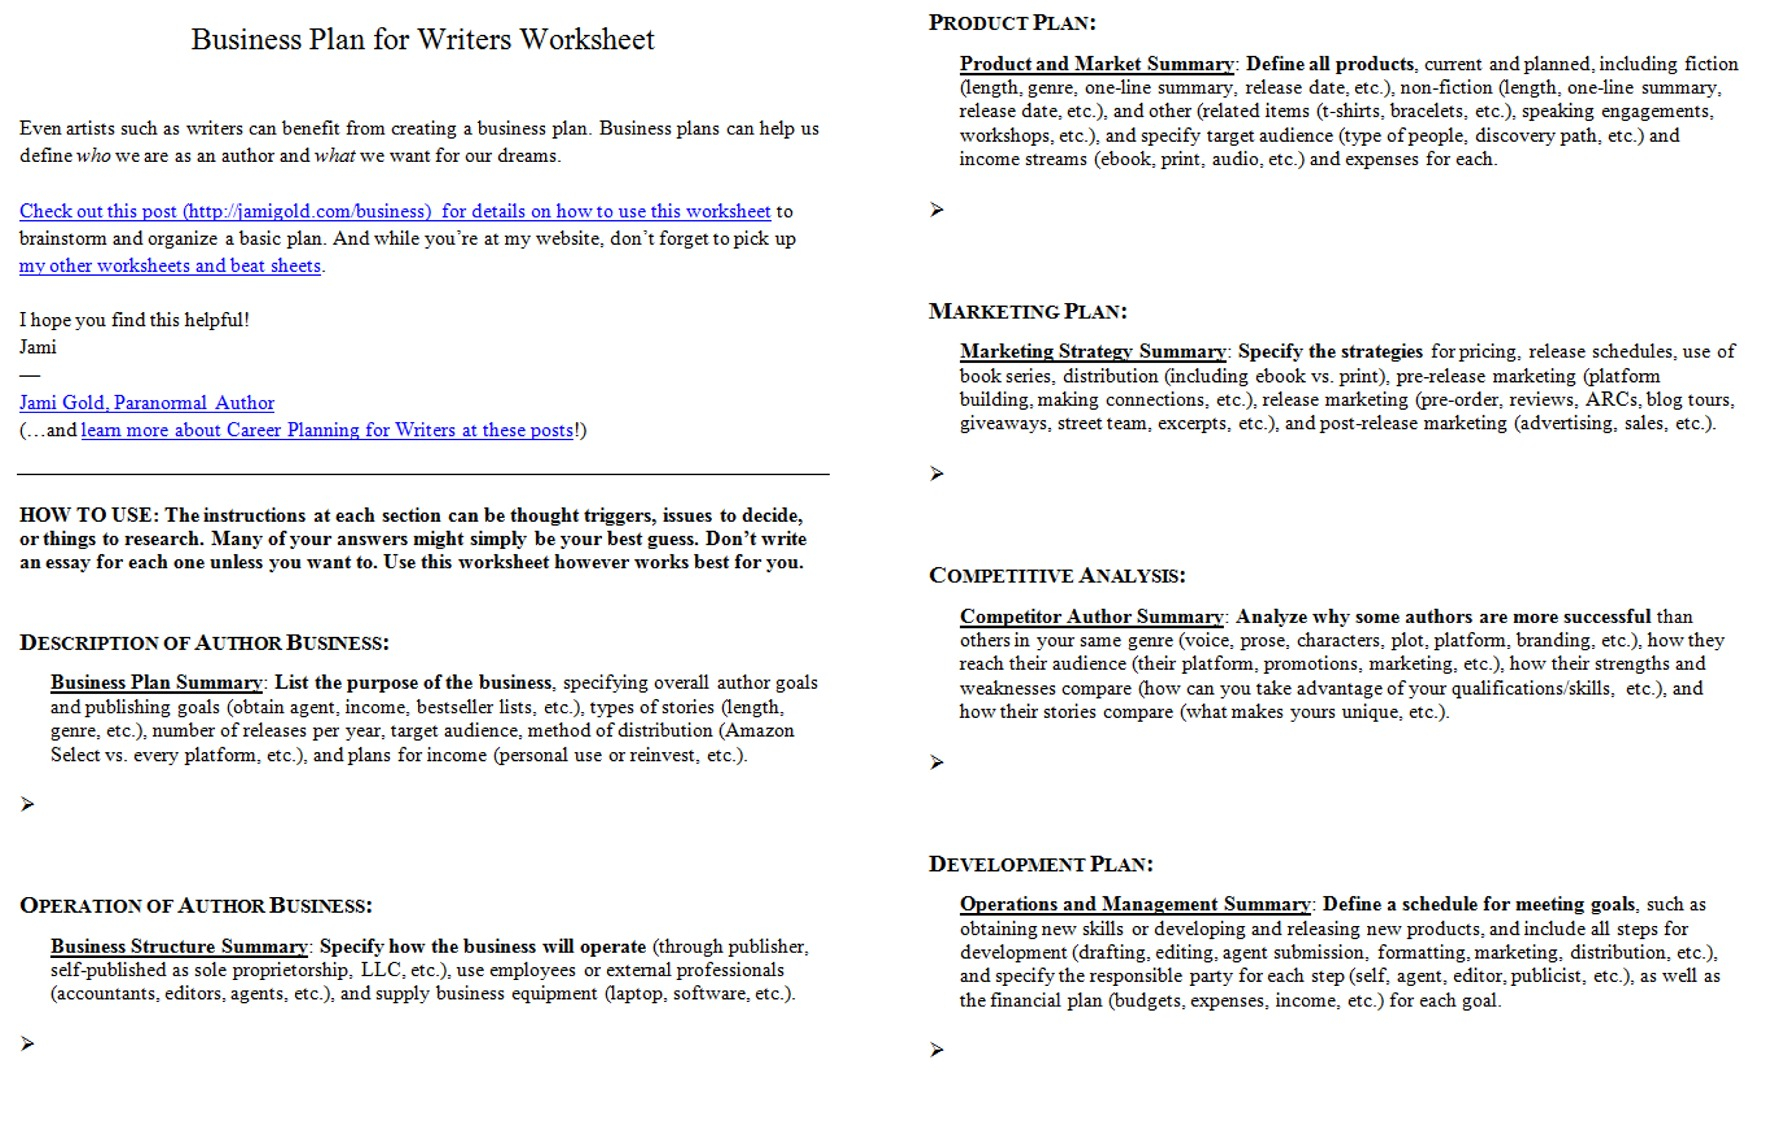 Aldiablosus  Sweet Worksheets For Writers  Jami Gold Paranormal Author With Outstanding Screen Shot Of Both Pages Of The Business Plan For Writers Worksheet With Beauteous Box Whisker Plot Worksheet Also Expanded Notation With Decimals Worksheets In Addition Eighth Grade Science Worksheets And Ir Worksheet As Well As Equations With Two Variables Worksheet Additionally Area Of Right Triangle Worksheet From Jamigoldcom With Aldiablosus  Outstanding Worksheets For Writers  Jami Gold Paranormal Author With Beauteous Screen Shot Of Both Pages Of The Business Plan For Writers Worksheet And Sweet Box Whisker Plot Worksheet Also Expanded Notation With Decimals Worksheets In Addition Eighth Grade Science Worksheets From Jamigoldcom